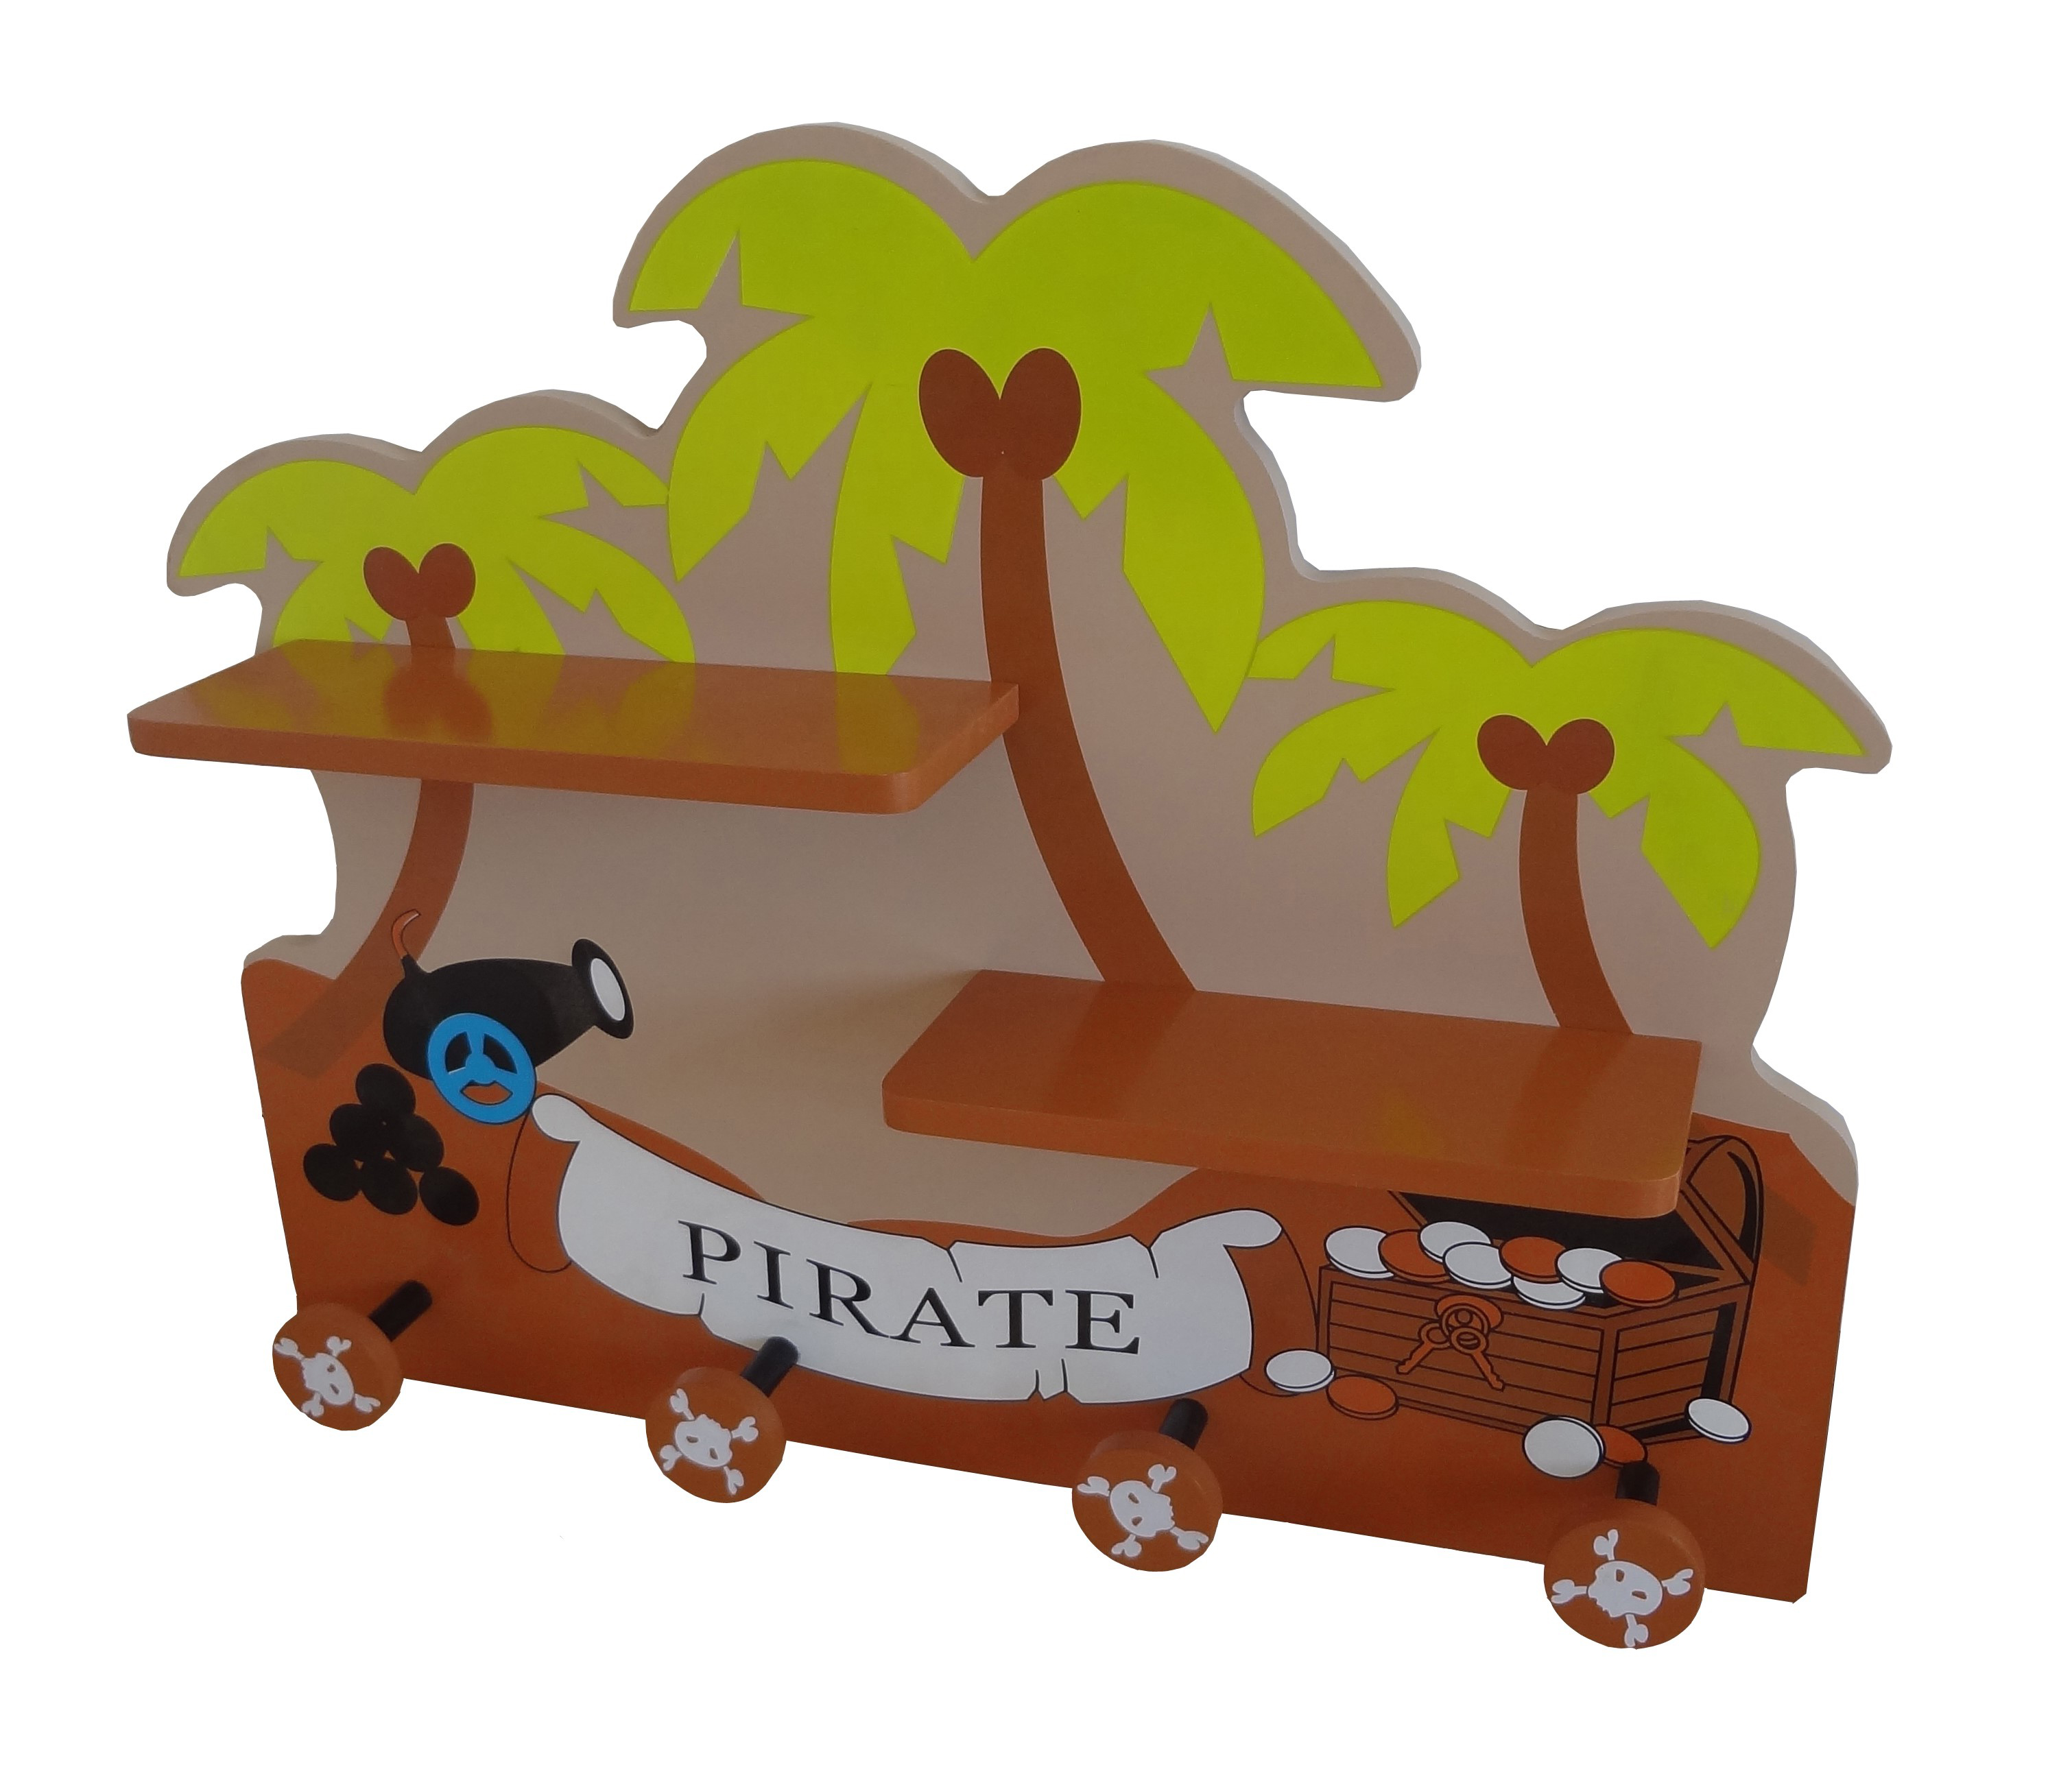 Bebe Style Children's Wooden Pirate Wall Mounted Shelf and Coat Hanger-0